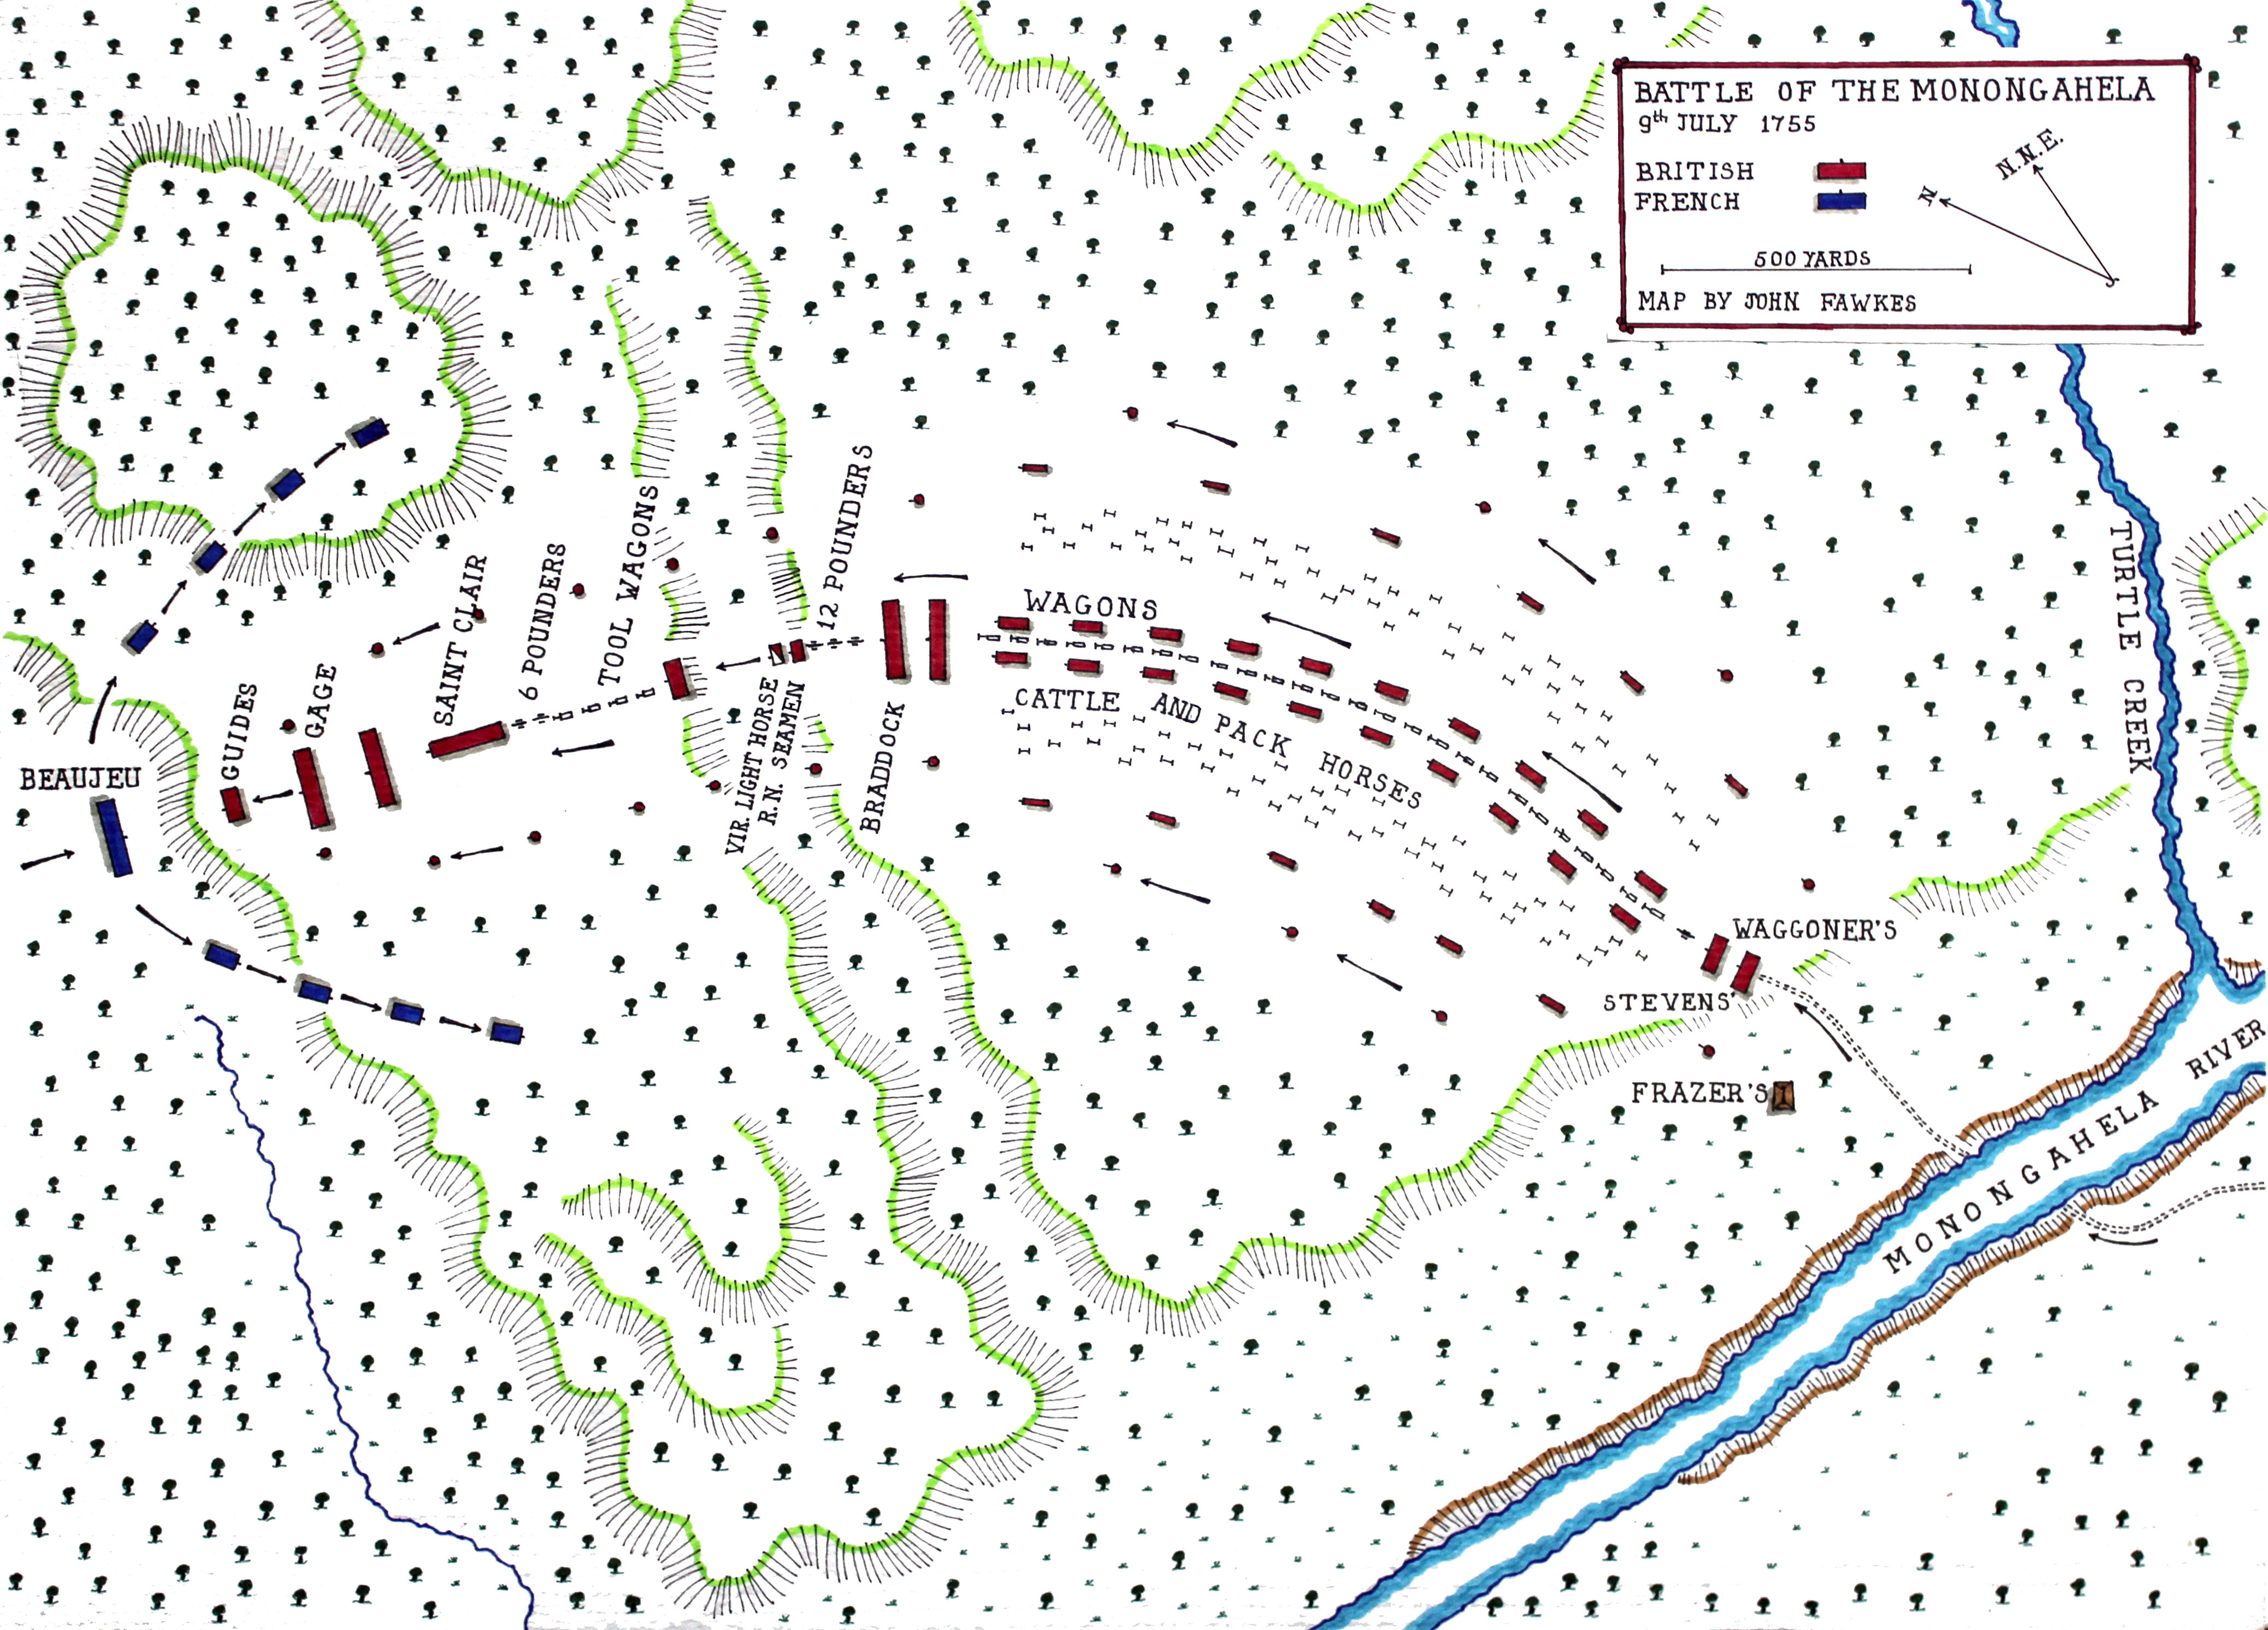 Map of the Battle of the Monongahela 9th July 1755 by John Fawkes